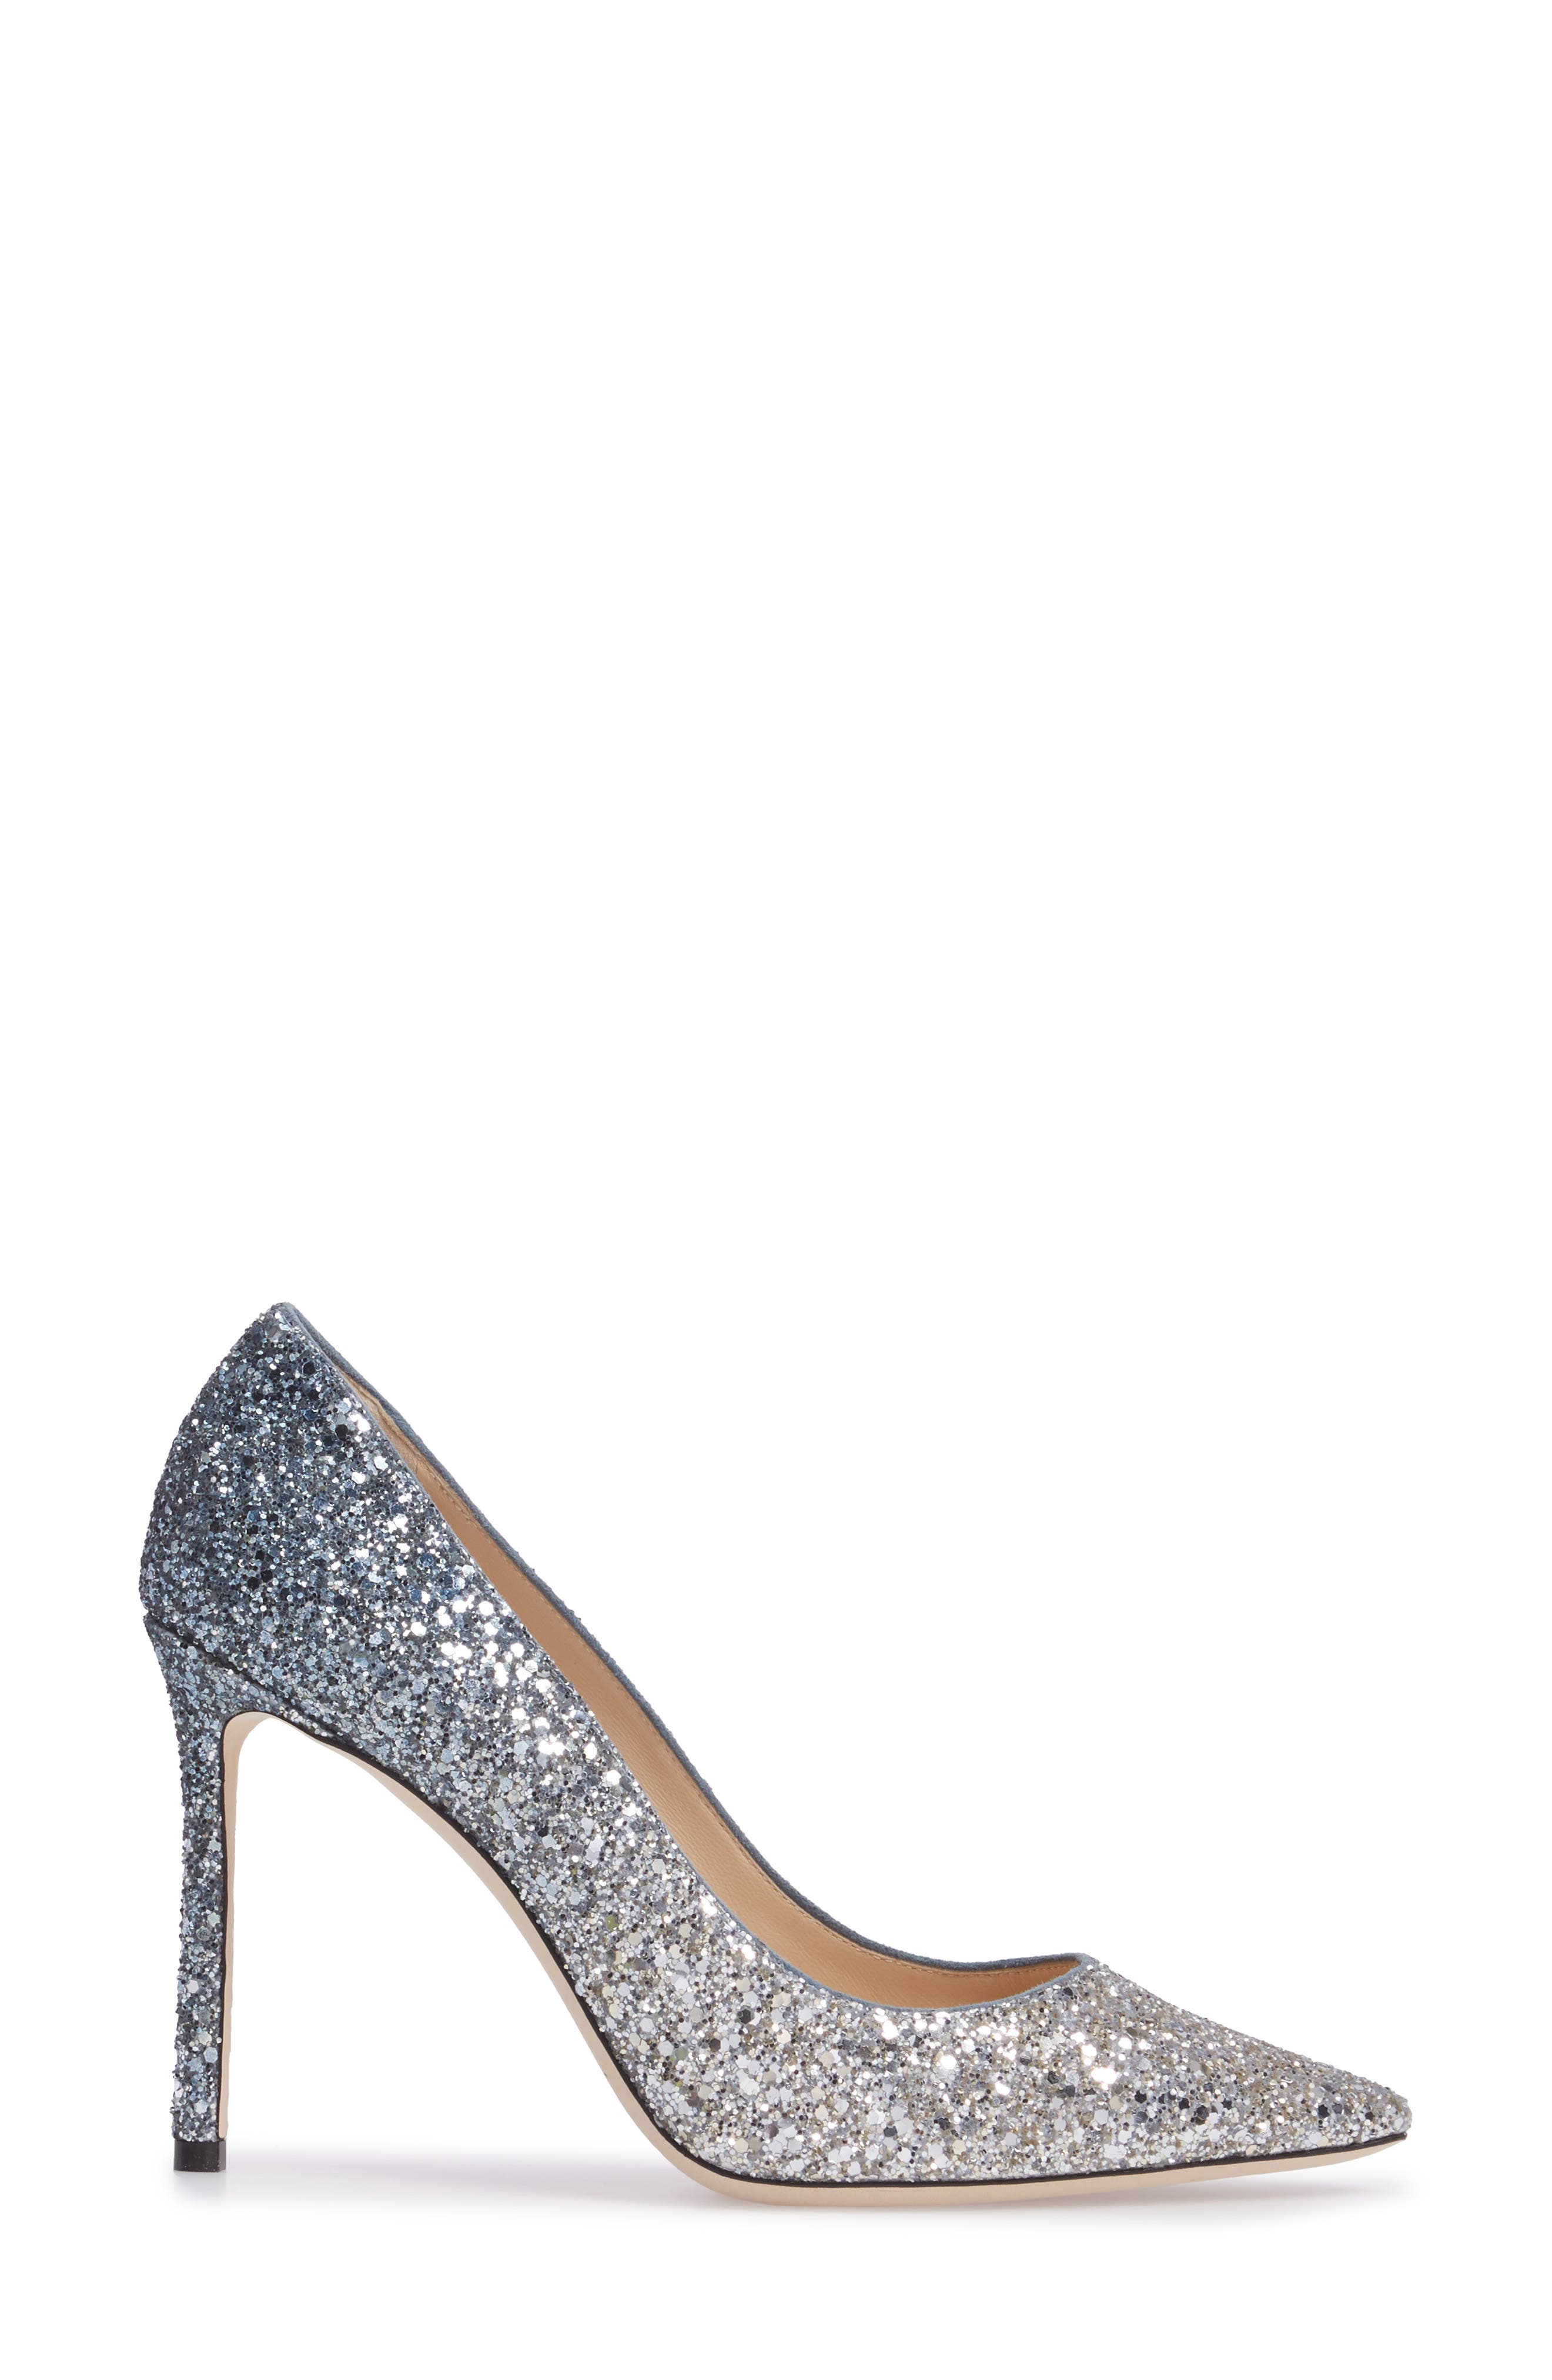 Romy Glitter Pump,                             Alternate thumbnail 2, color,                             Silver/ Dusk Blue